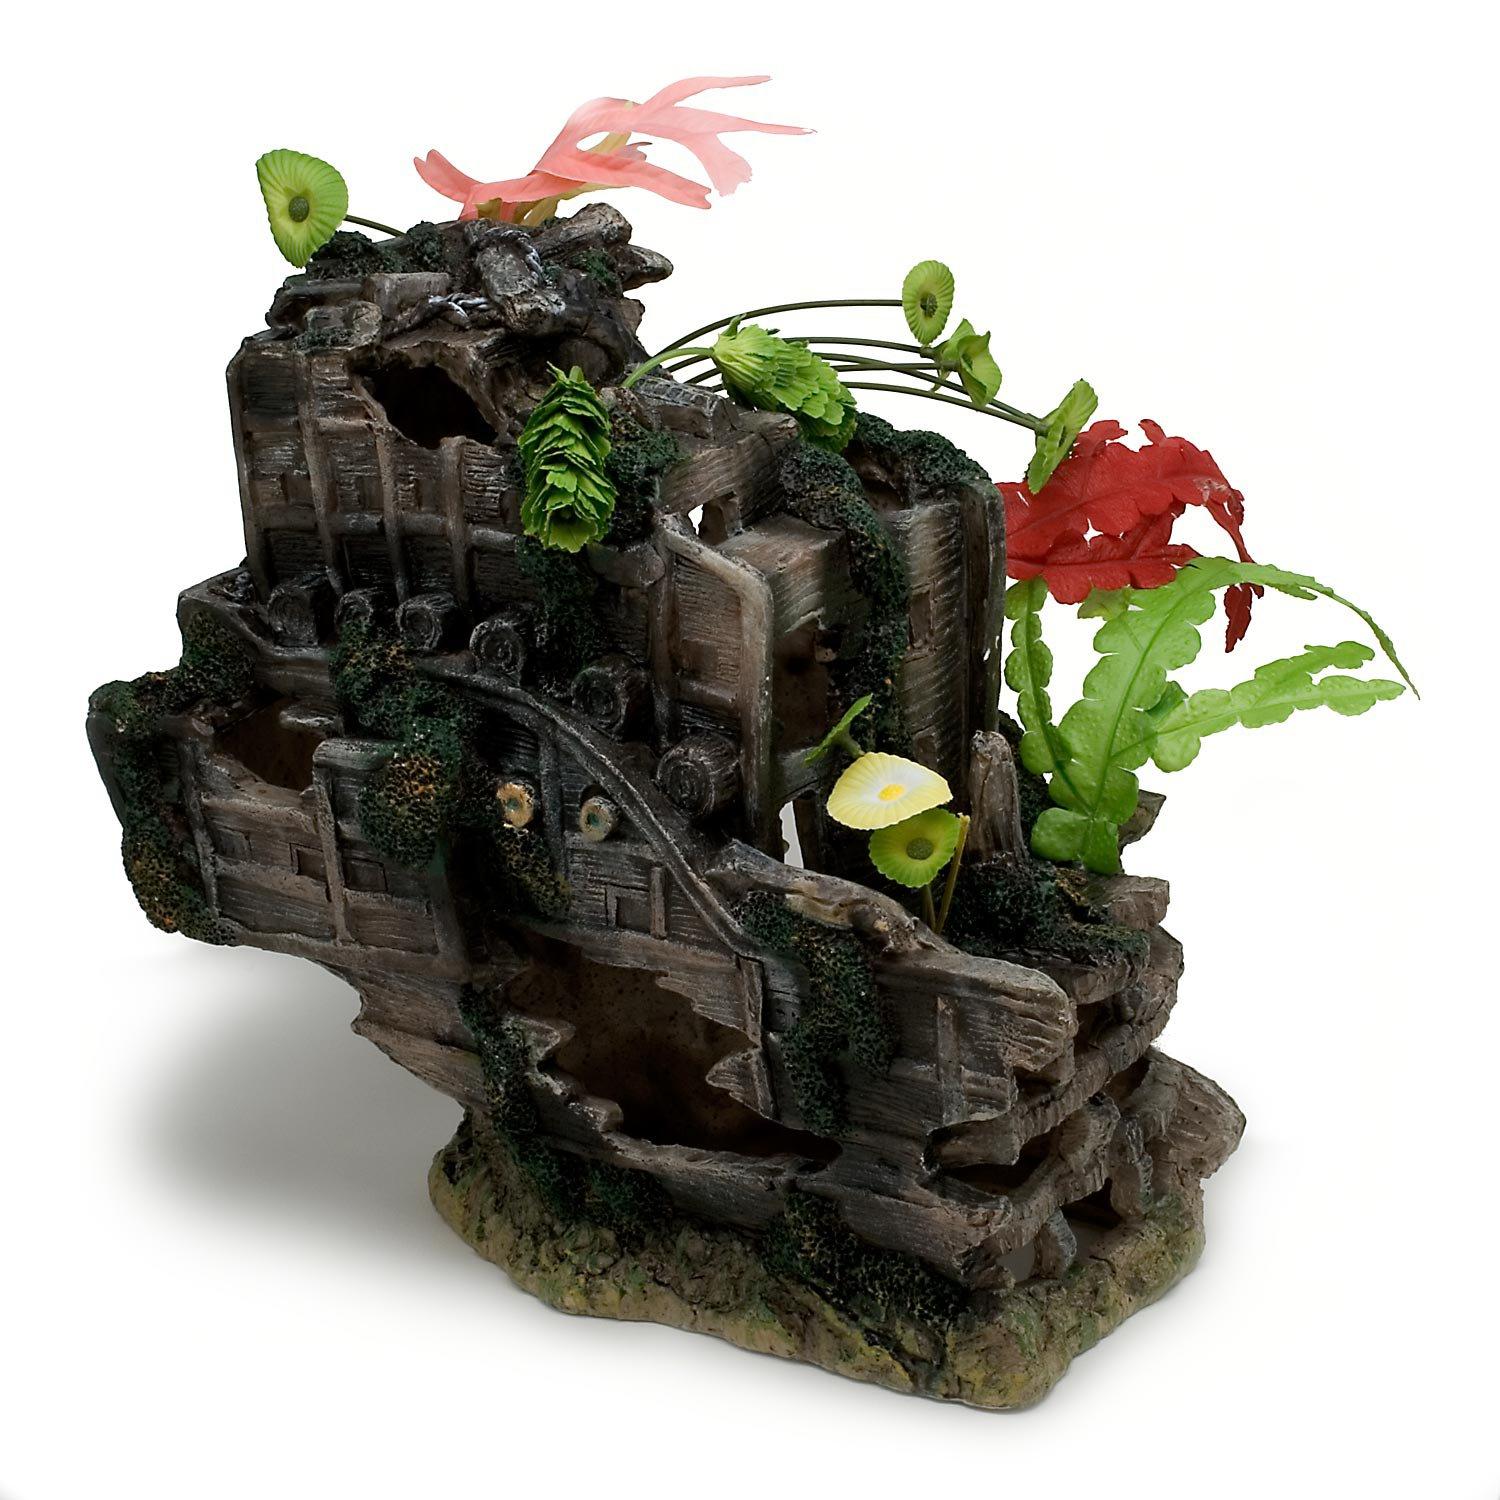 Penn plax sunken gardens shipwreck stern aquarium decor for Aquarium decoration ornaments